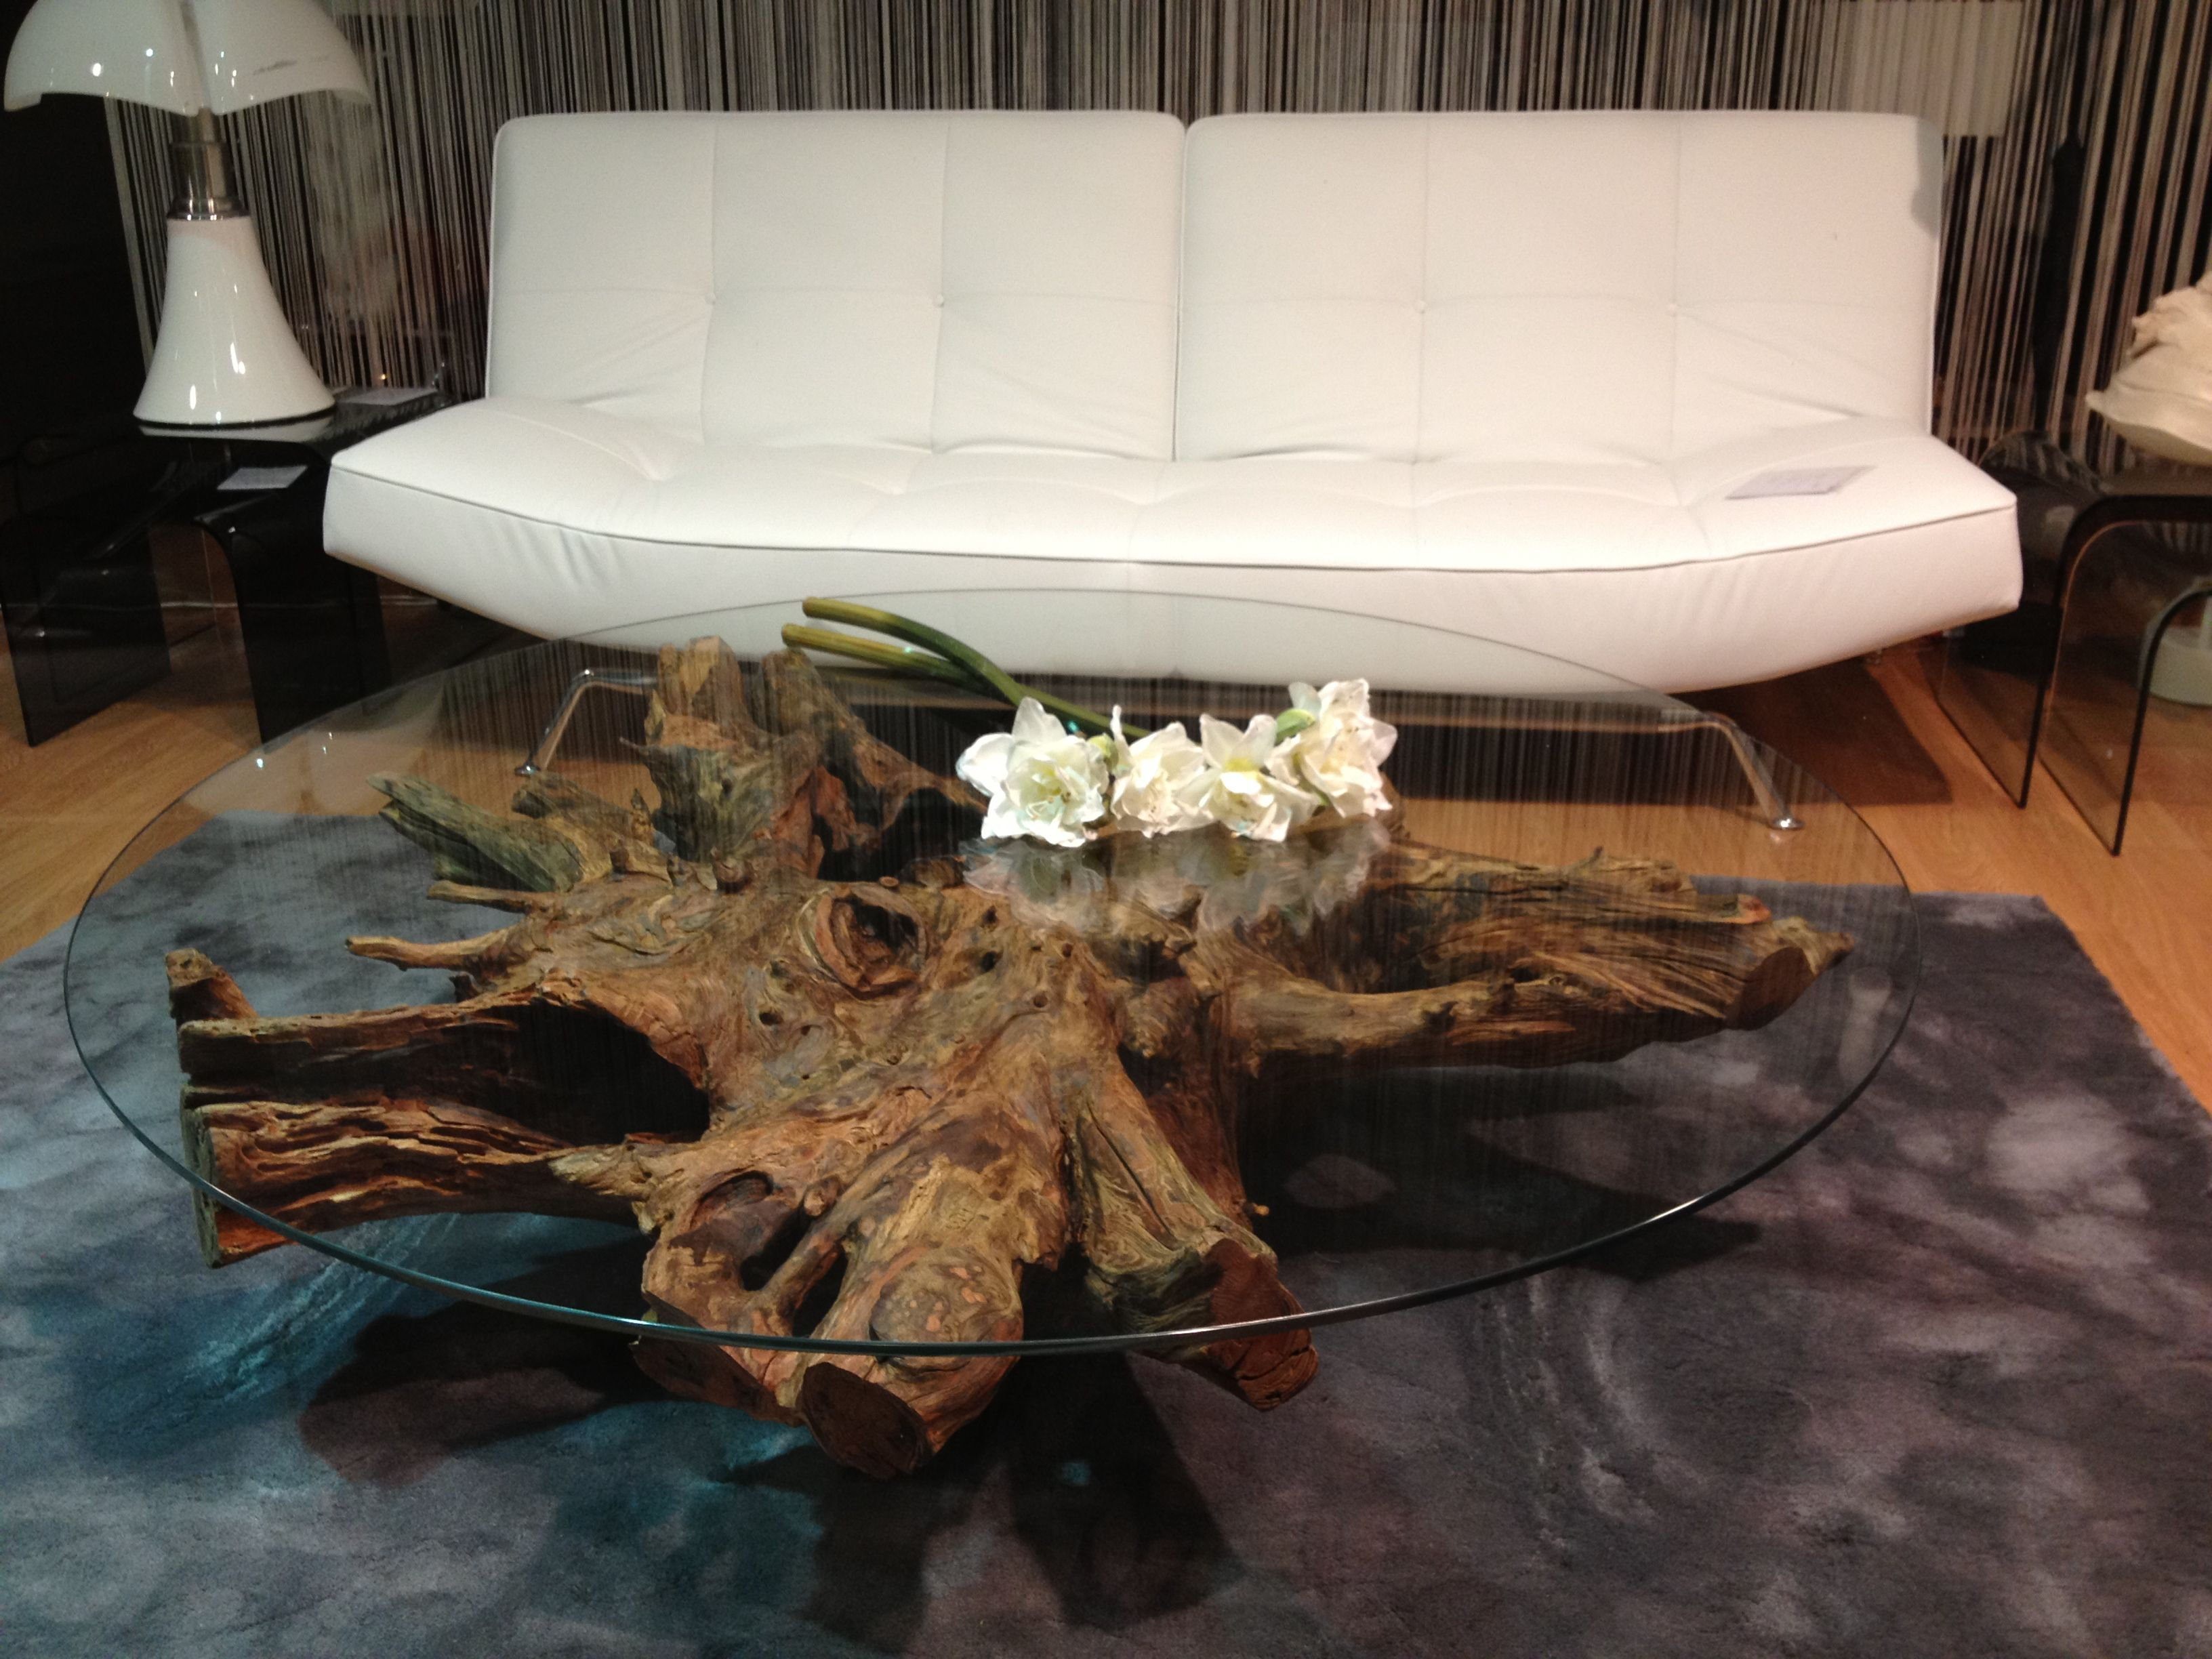 Mobilier Tronc D Arbre table basse souche d'arbre/tree roots coffee table | table